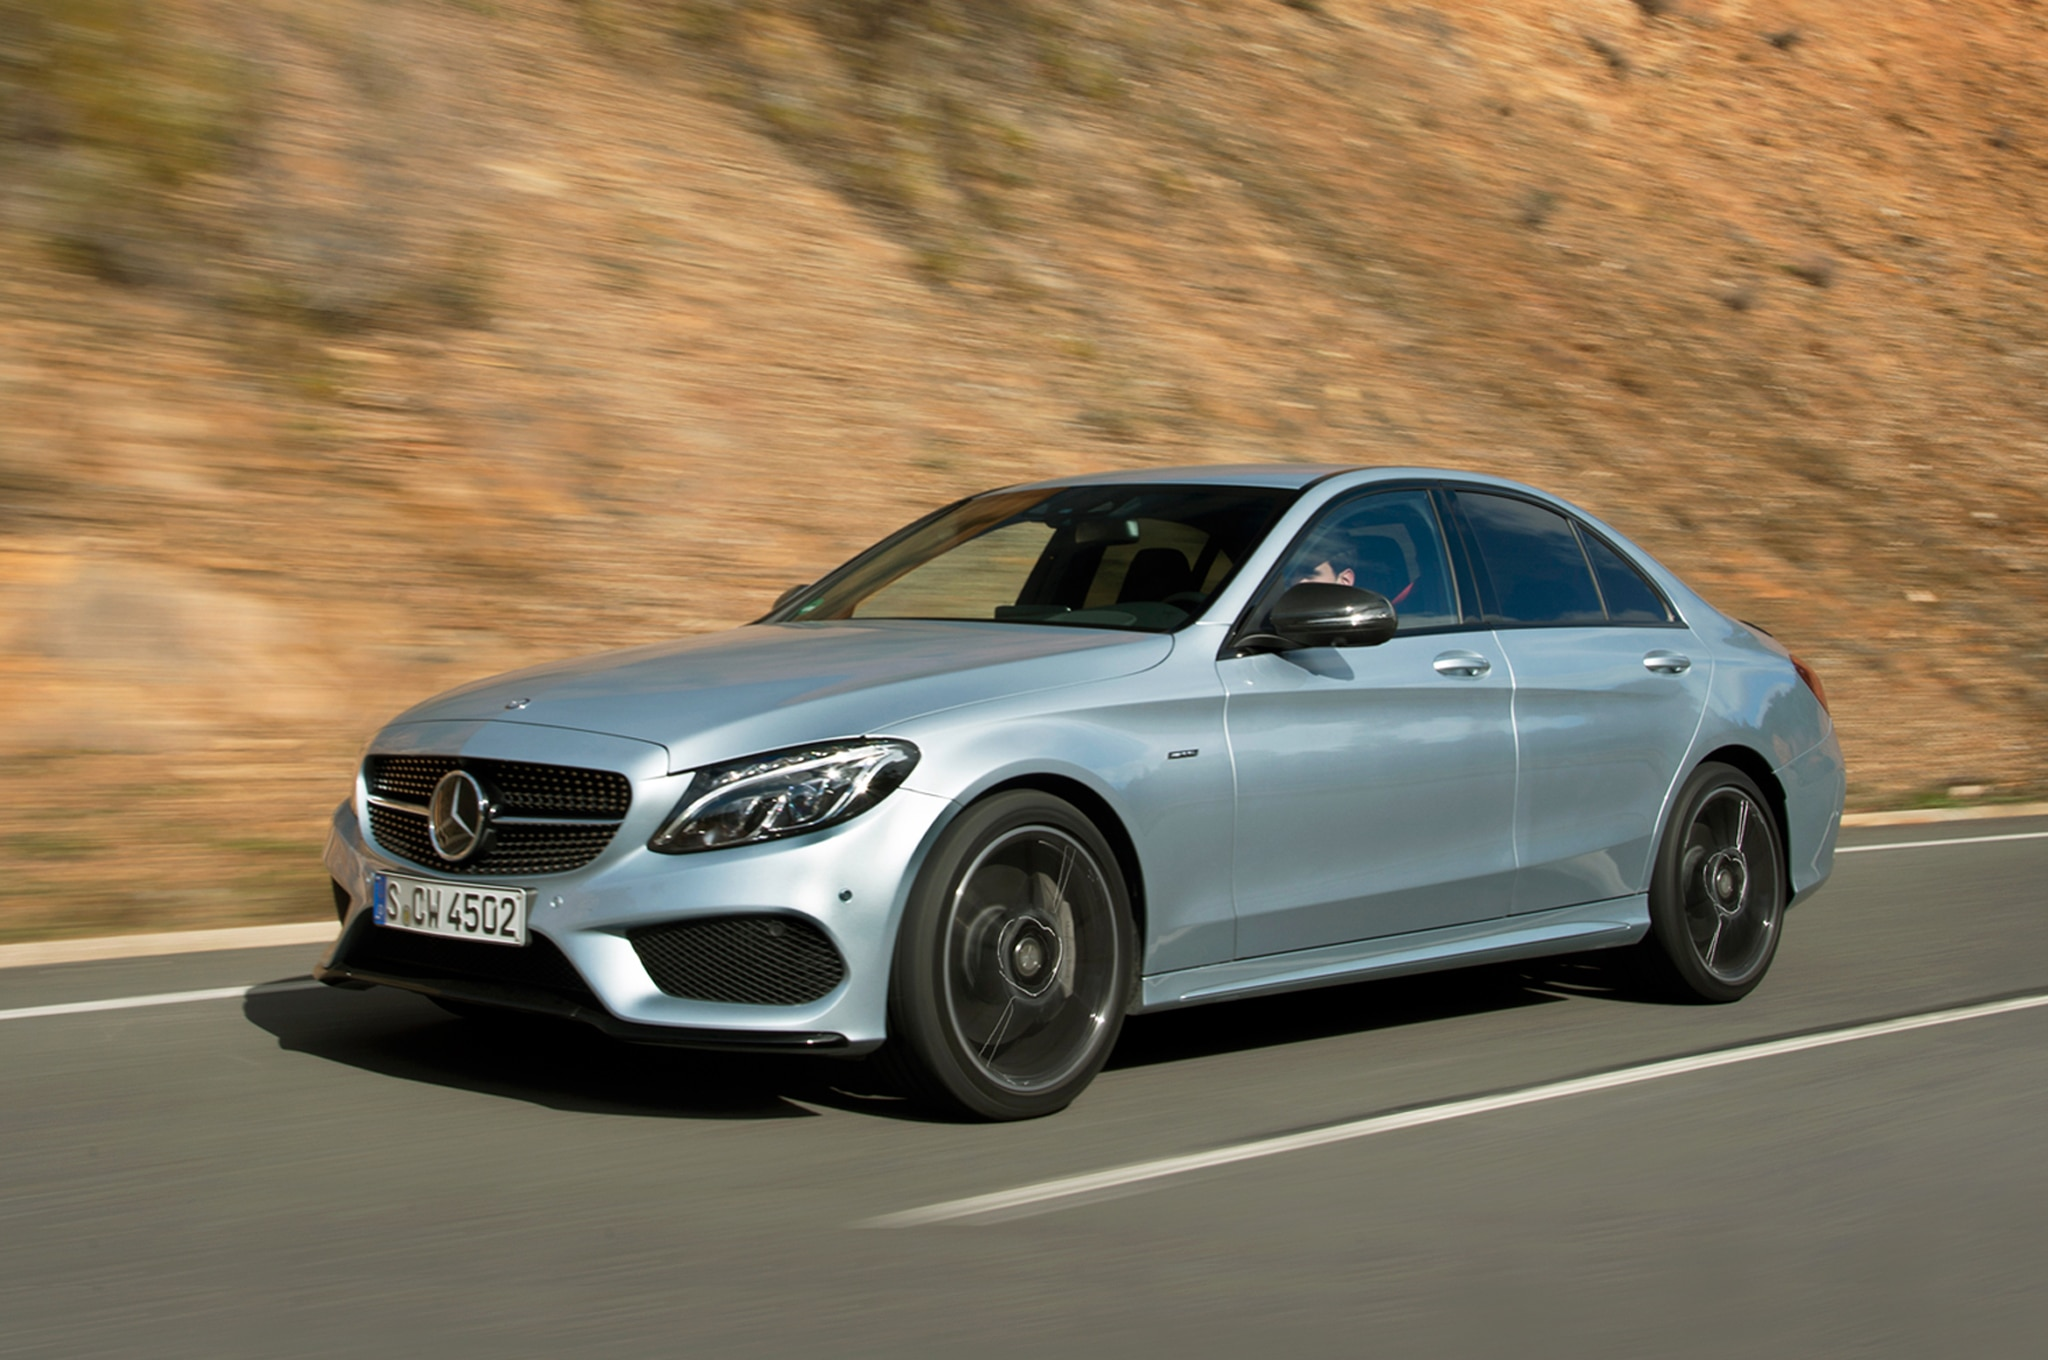 http://st.automobilemag.com/uploads/sites/11/2015/02/2016-Mercedes-Benz-C450-AMG-4Matic-front-three-quarter-in-motion-031.jpg